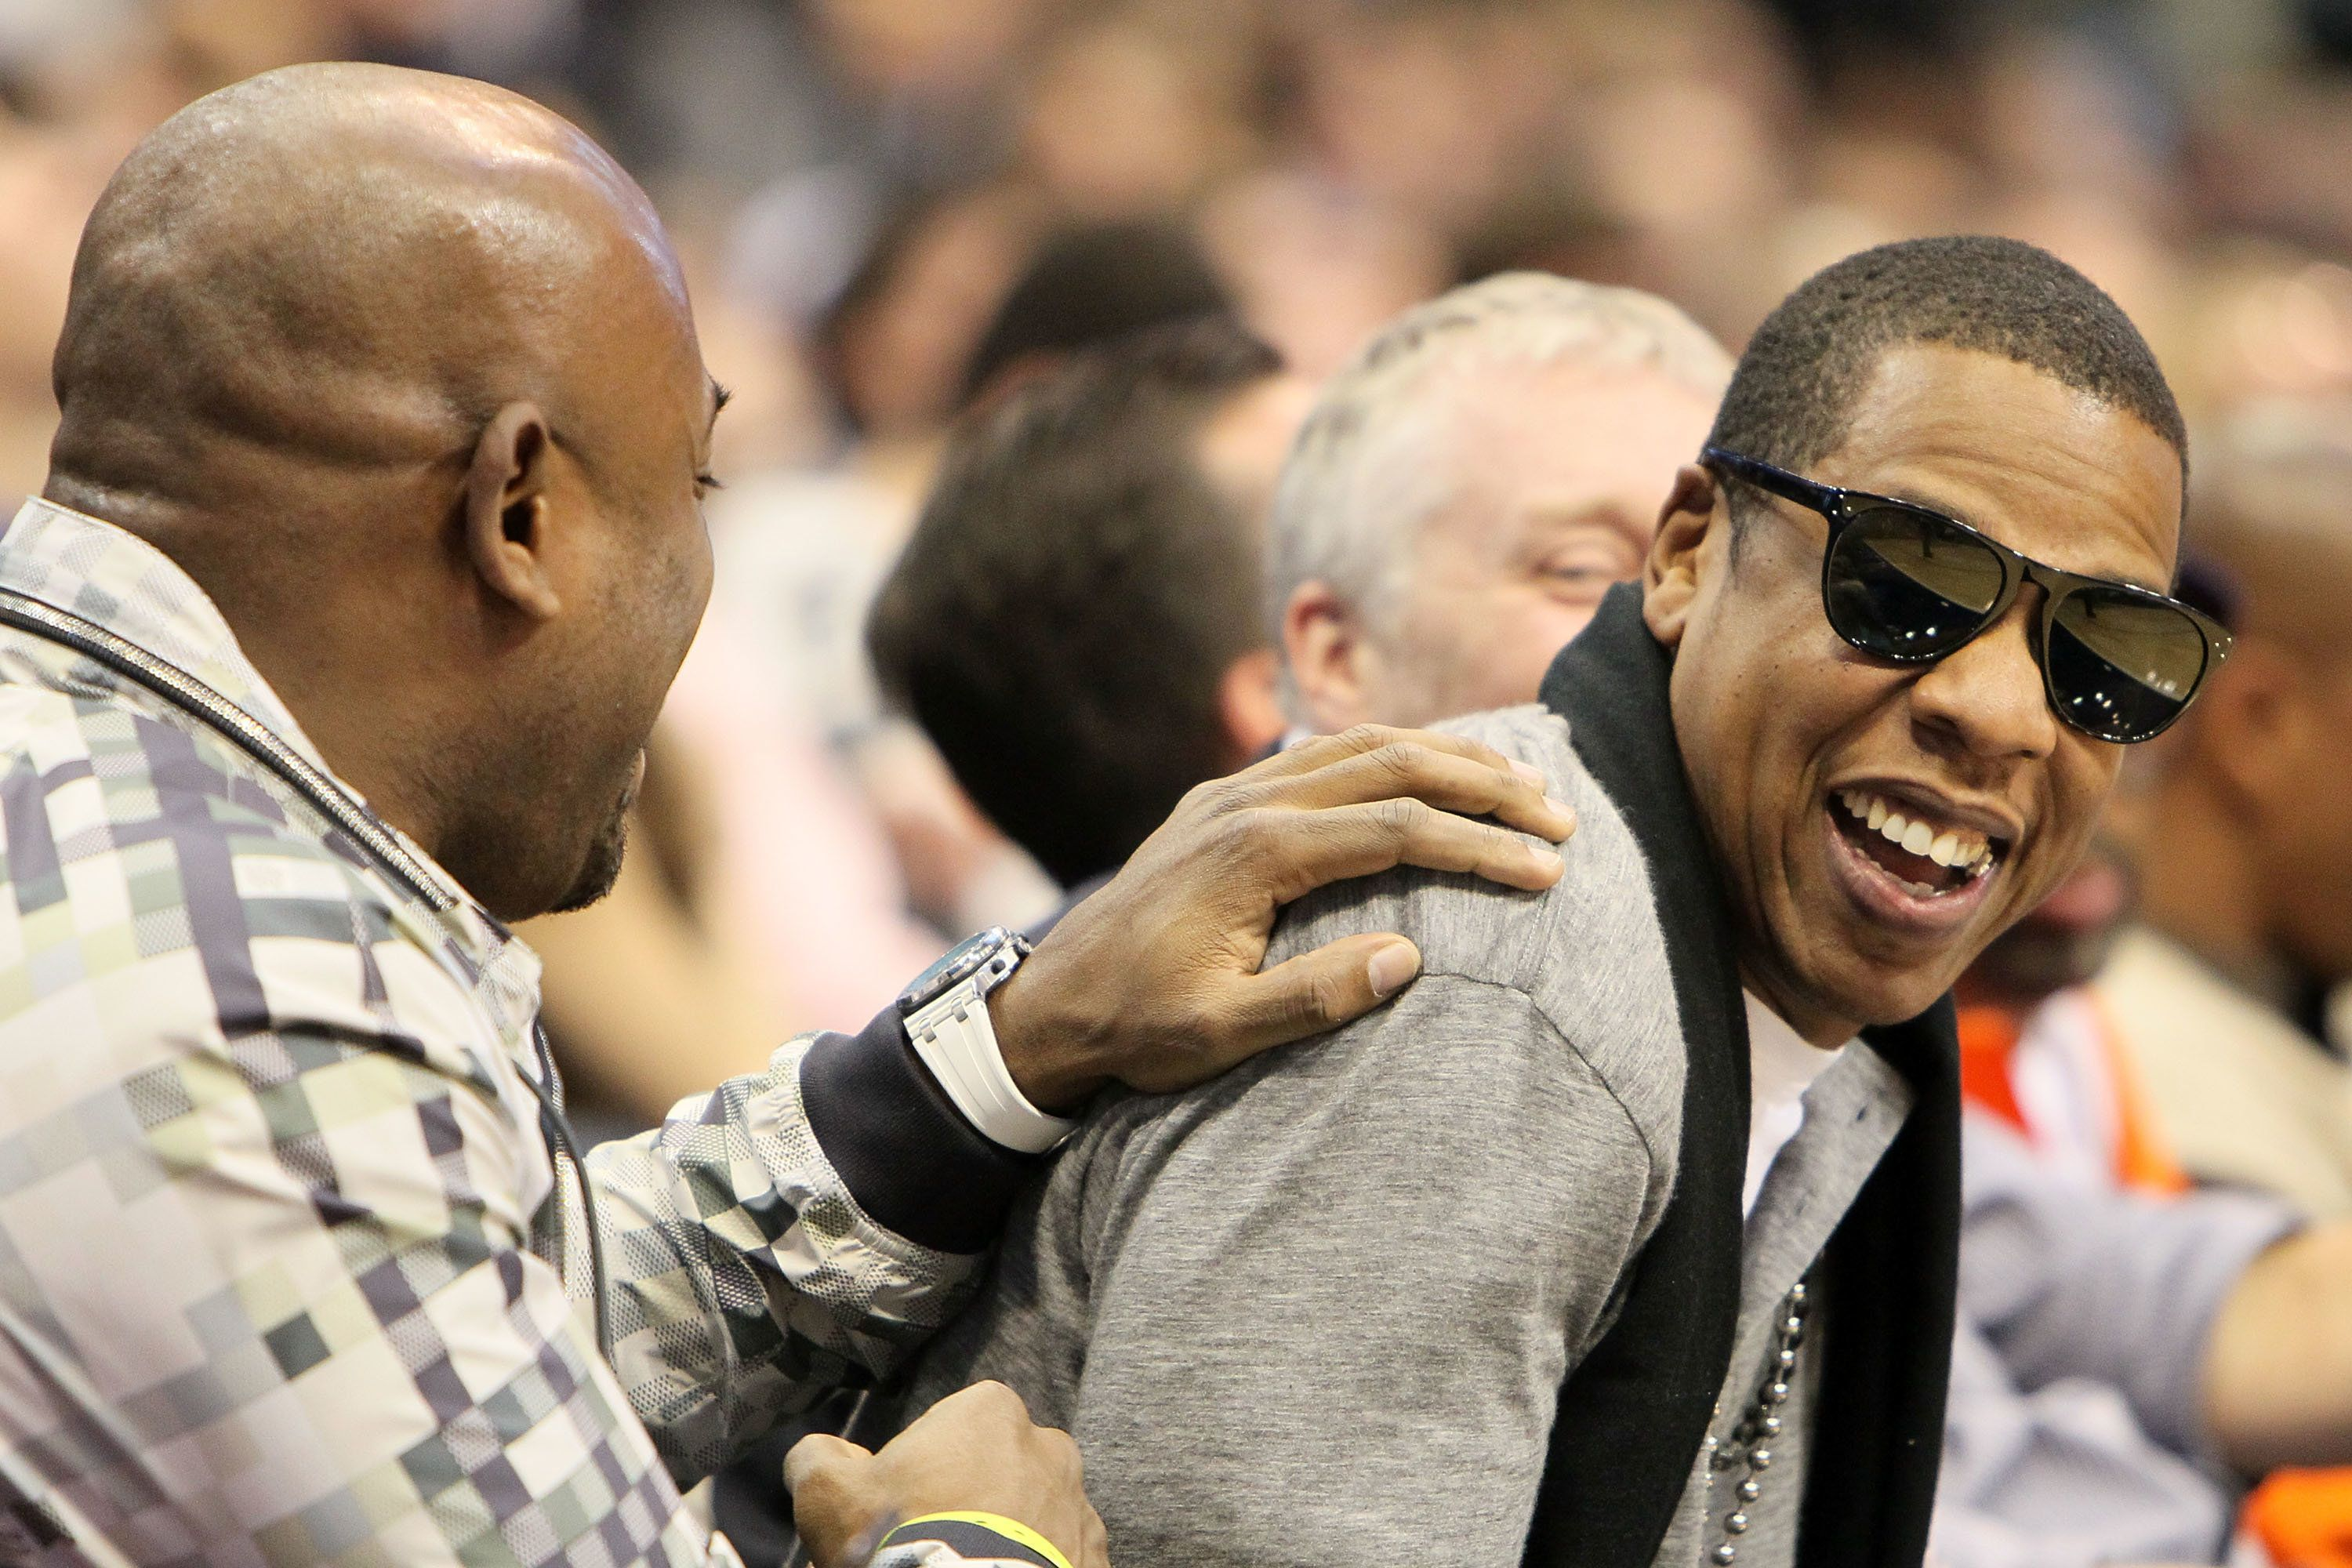 DALLAS - FEBRUARY 13:  Producer/rapper Shawn 'Jay-Z' Carter (R) laughs during the Haier Shooting Stars Competition on All-Star Saturday Night, part of 2010 NBA All-Star Weekend at American Airlines Center on February 13, 2010 in Dallas, Texas. NOTE TO USER: User expressly acknowledges and agrees that, by downloading and or using this photograph, User is consenting to the terms and conditions of the Getty Images License Agreement.  (Photo by Jed Jacobsohn/Getty Images)